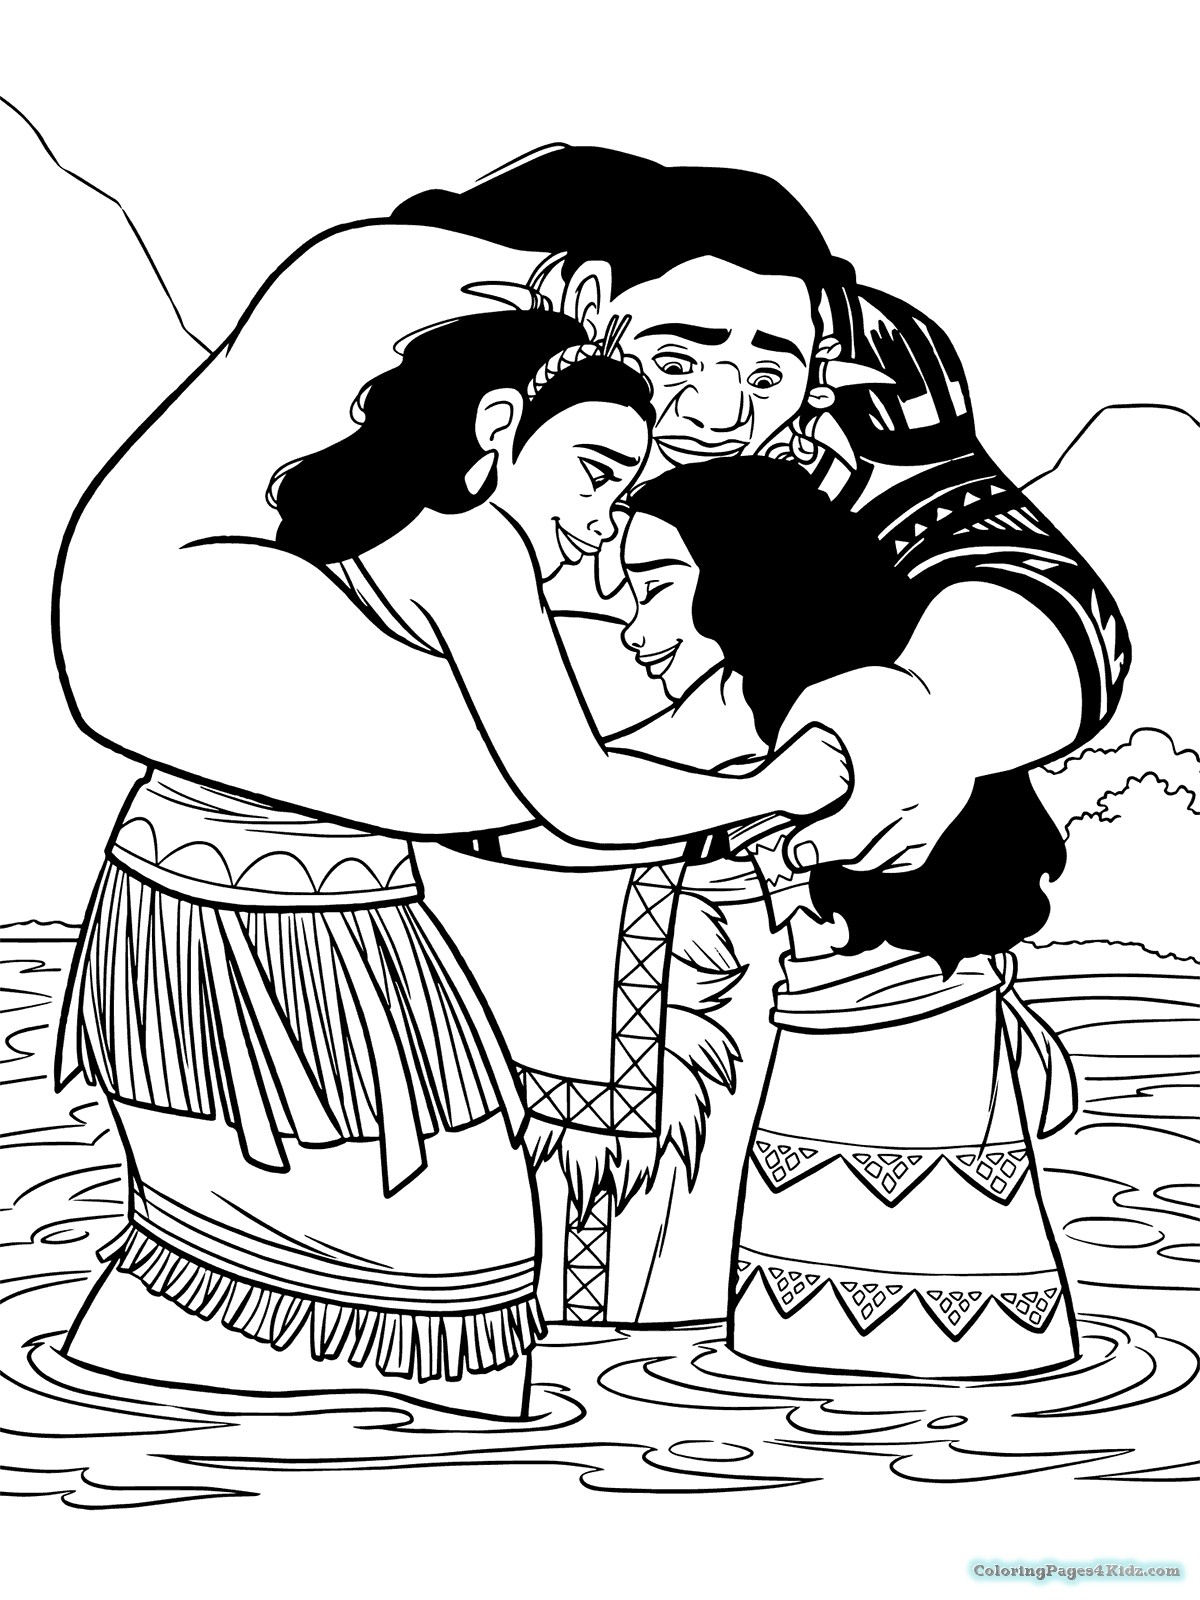 moana printable coloring pages the truth about moana coloring pages pdf ba easy printable free 1